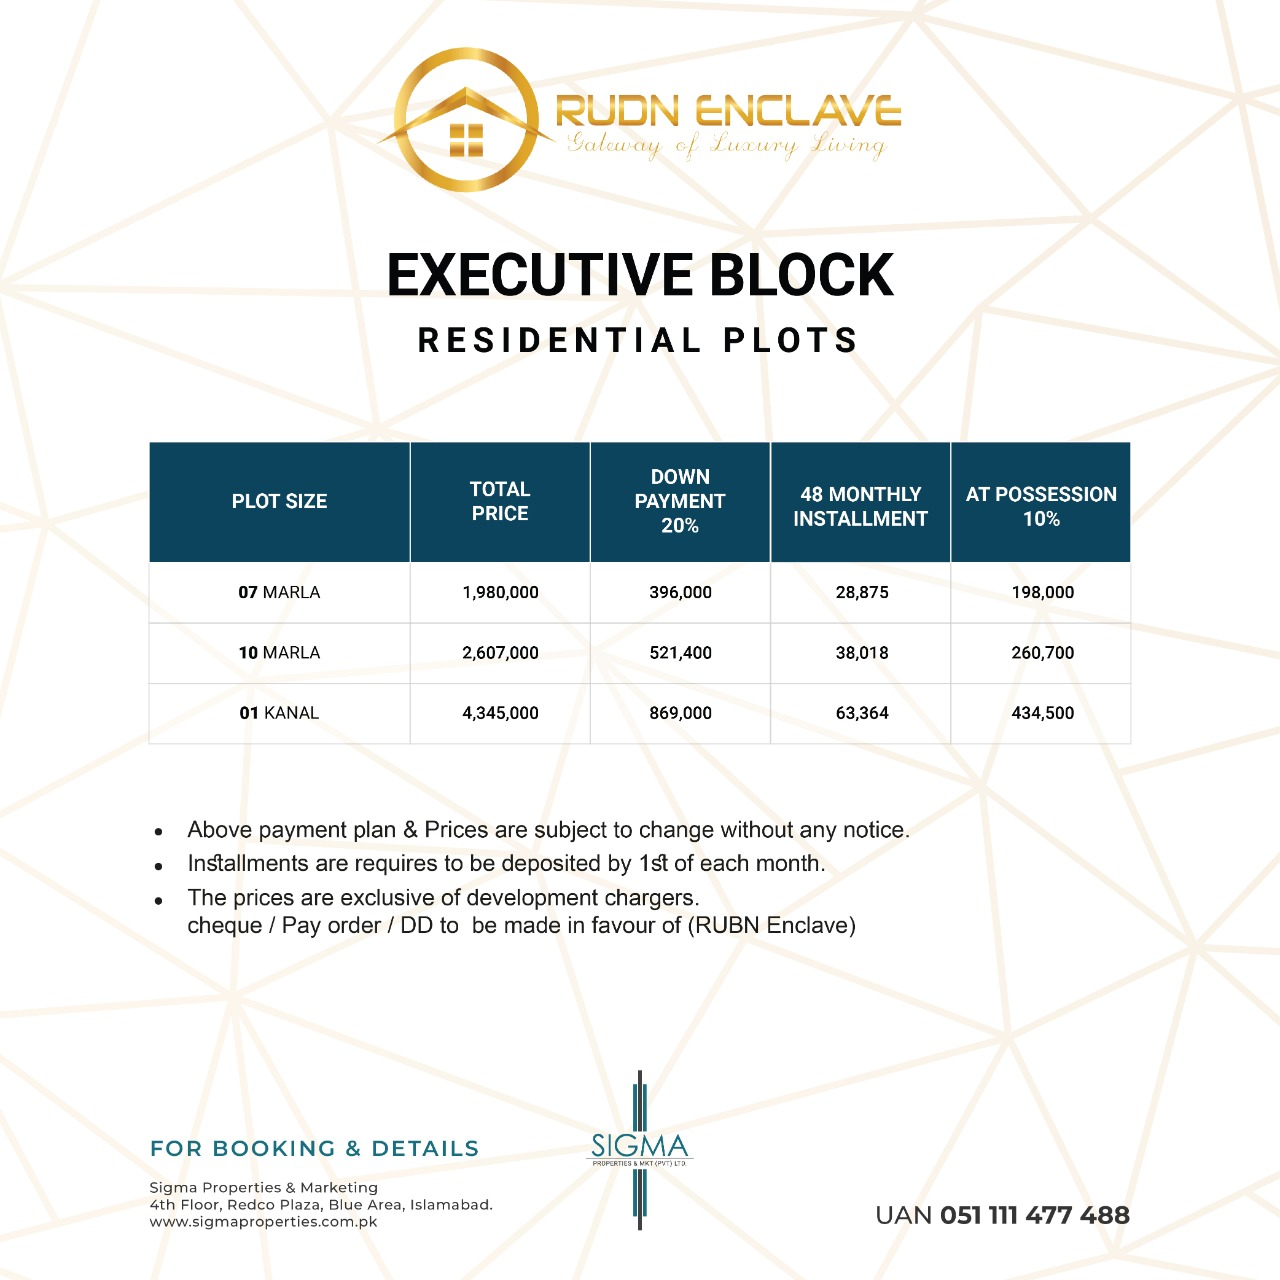 executive block residential plot payment plan of rudn enclave